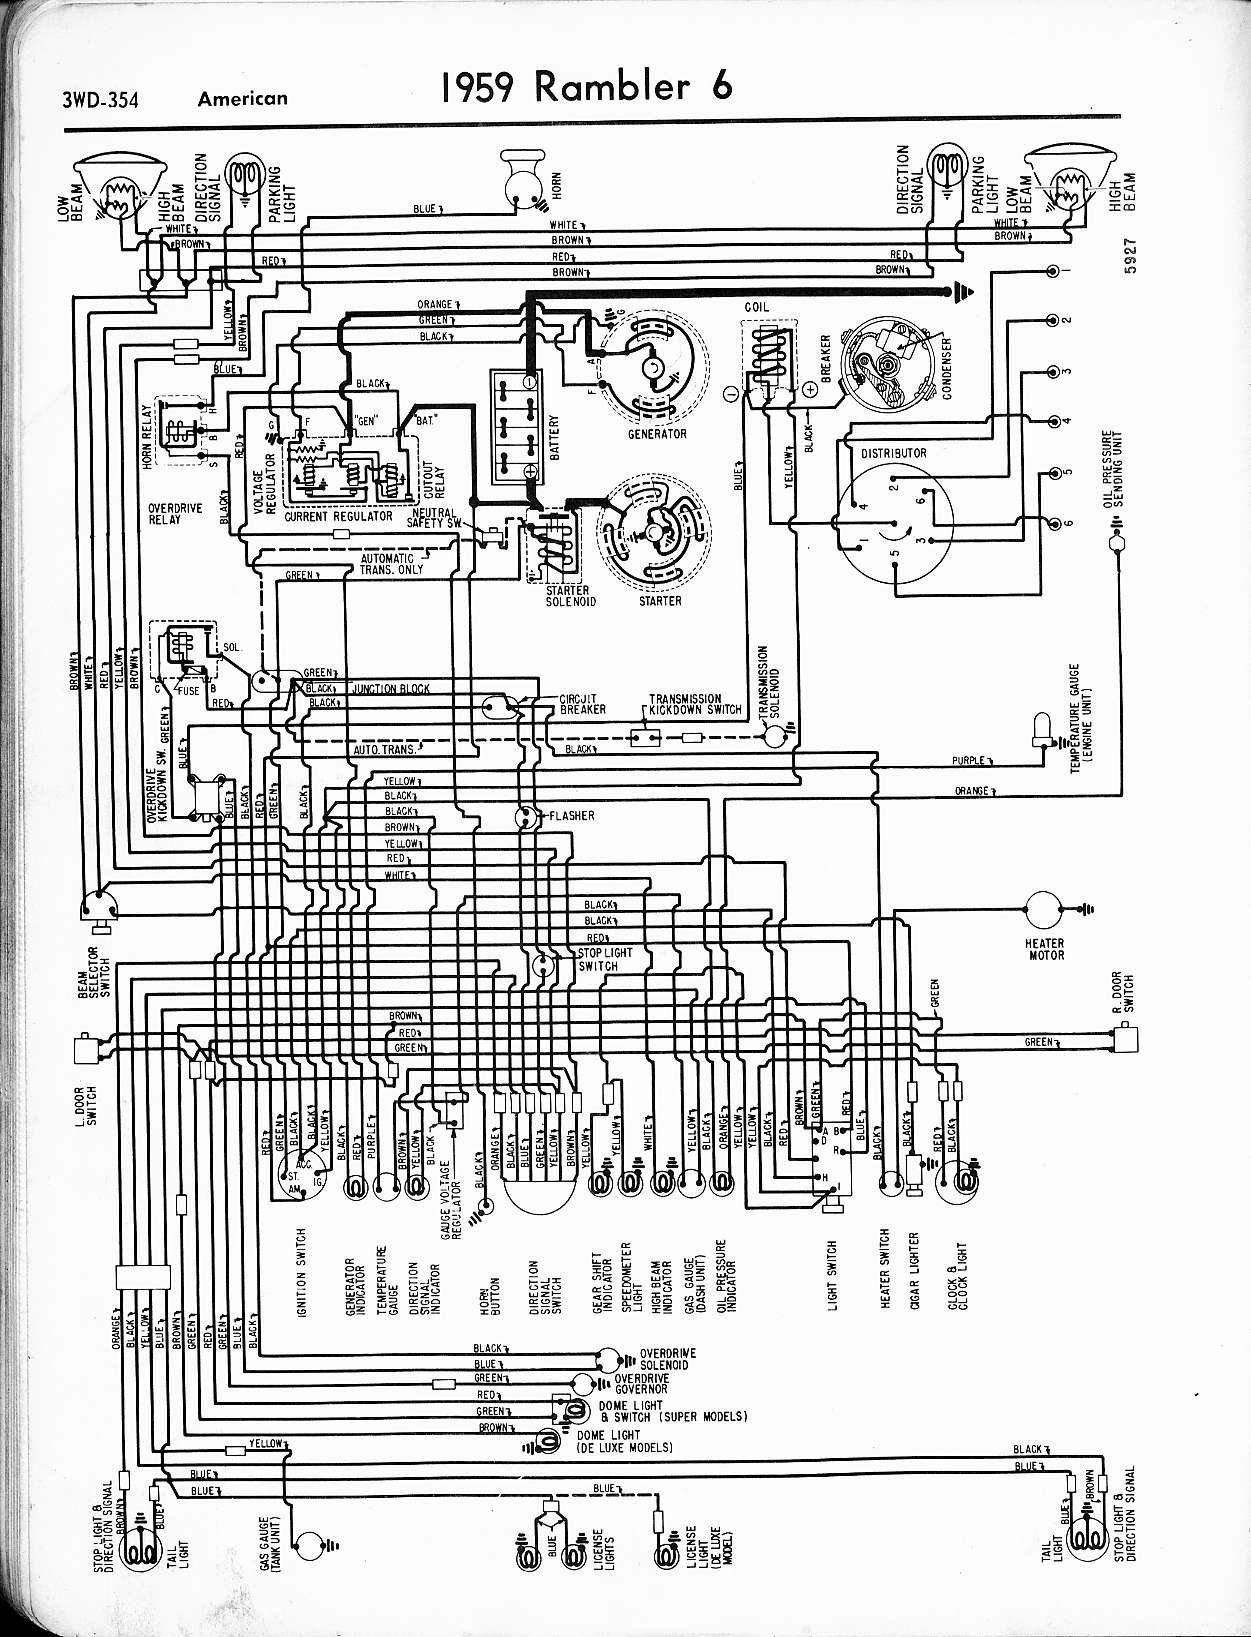 Excellent Clic Car Wiring Harness Wiring Diagram Wiring Cloud Hisonuggs Outletorg